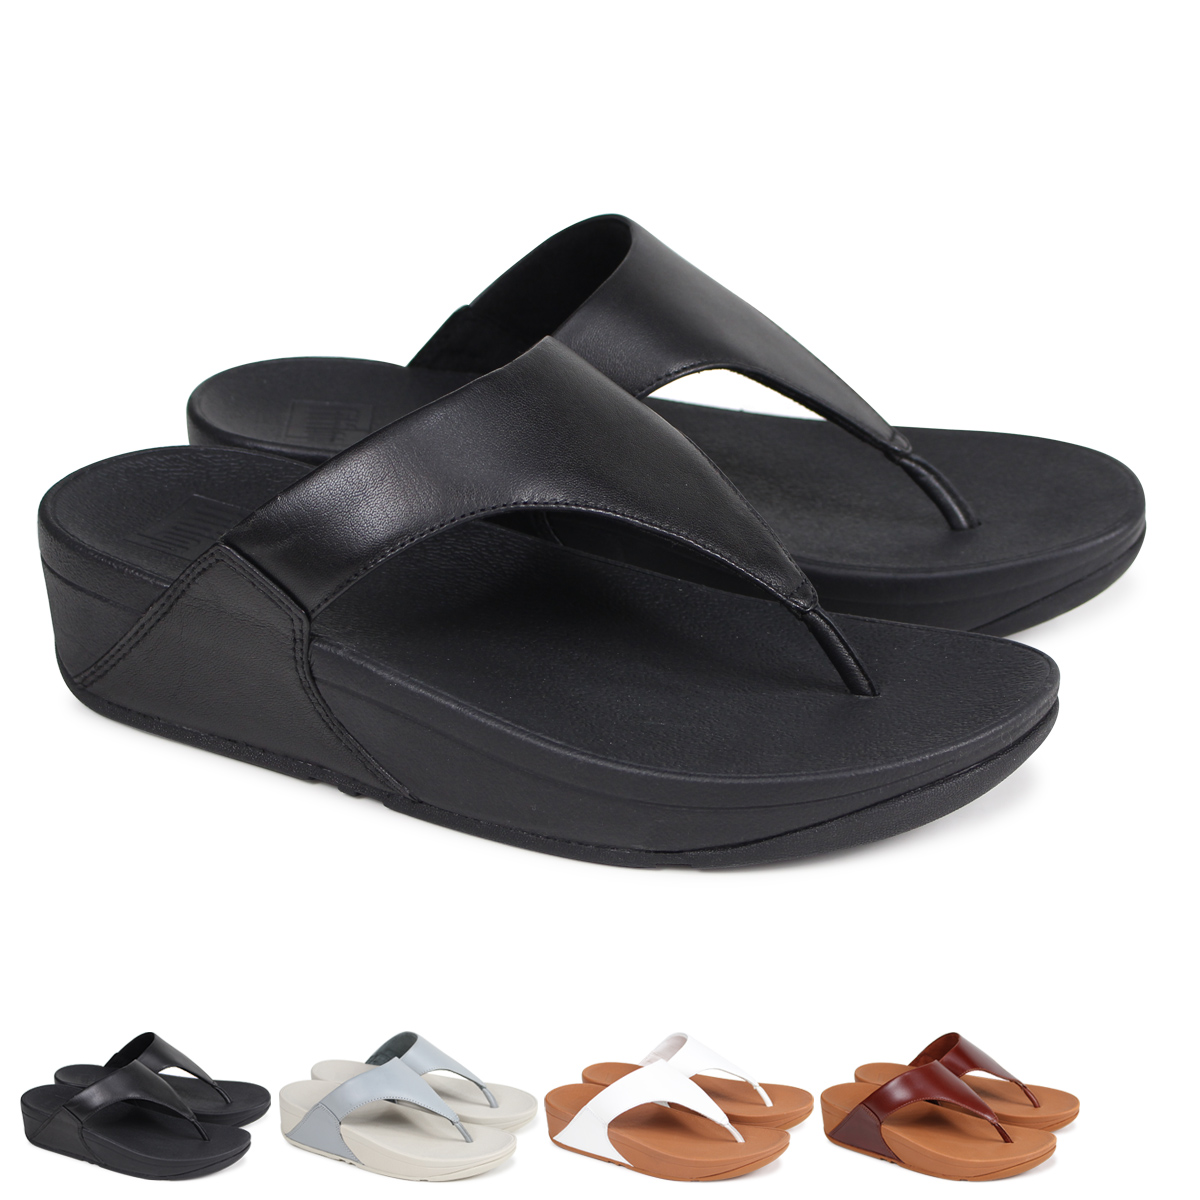 6260063a95ecb1 Whats up Sports  FitFlop LULU LEATHER TOE POST SANDALS sandals ...